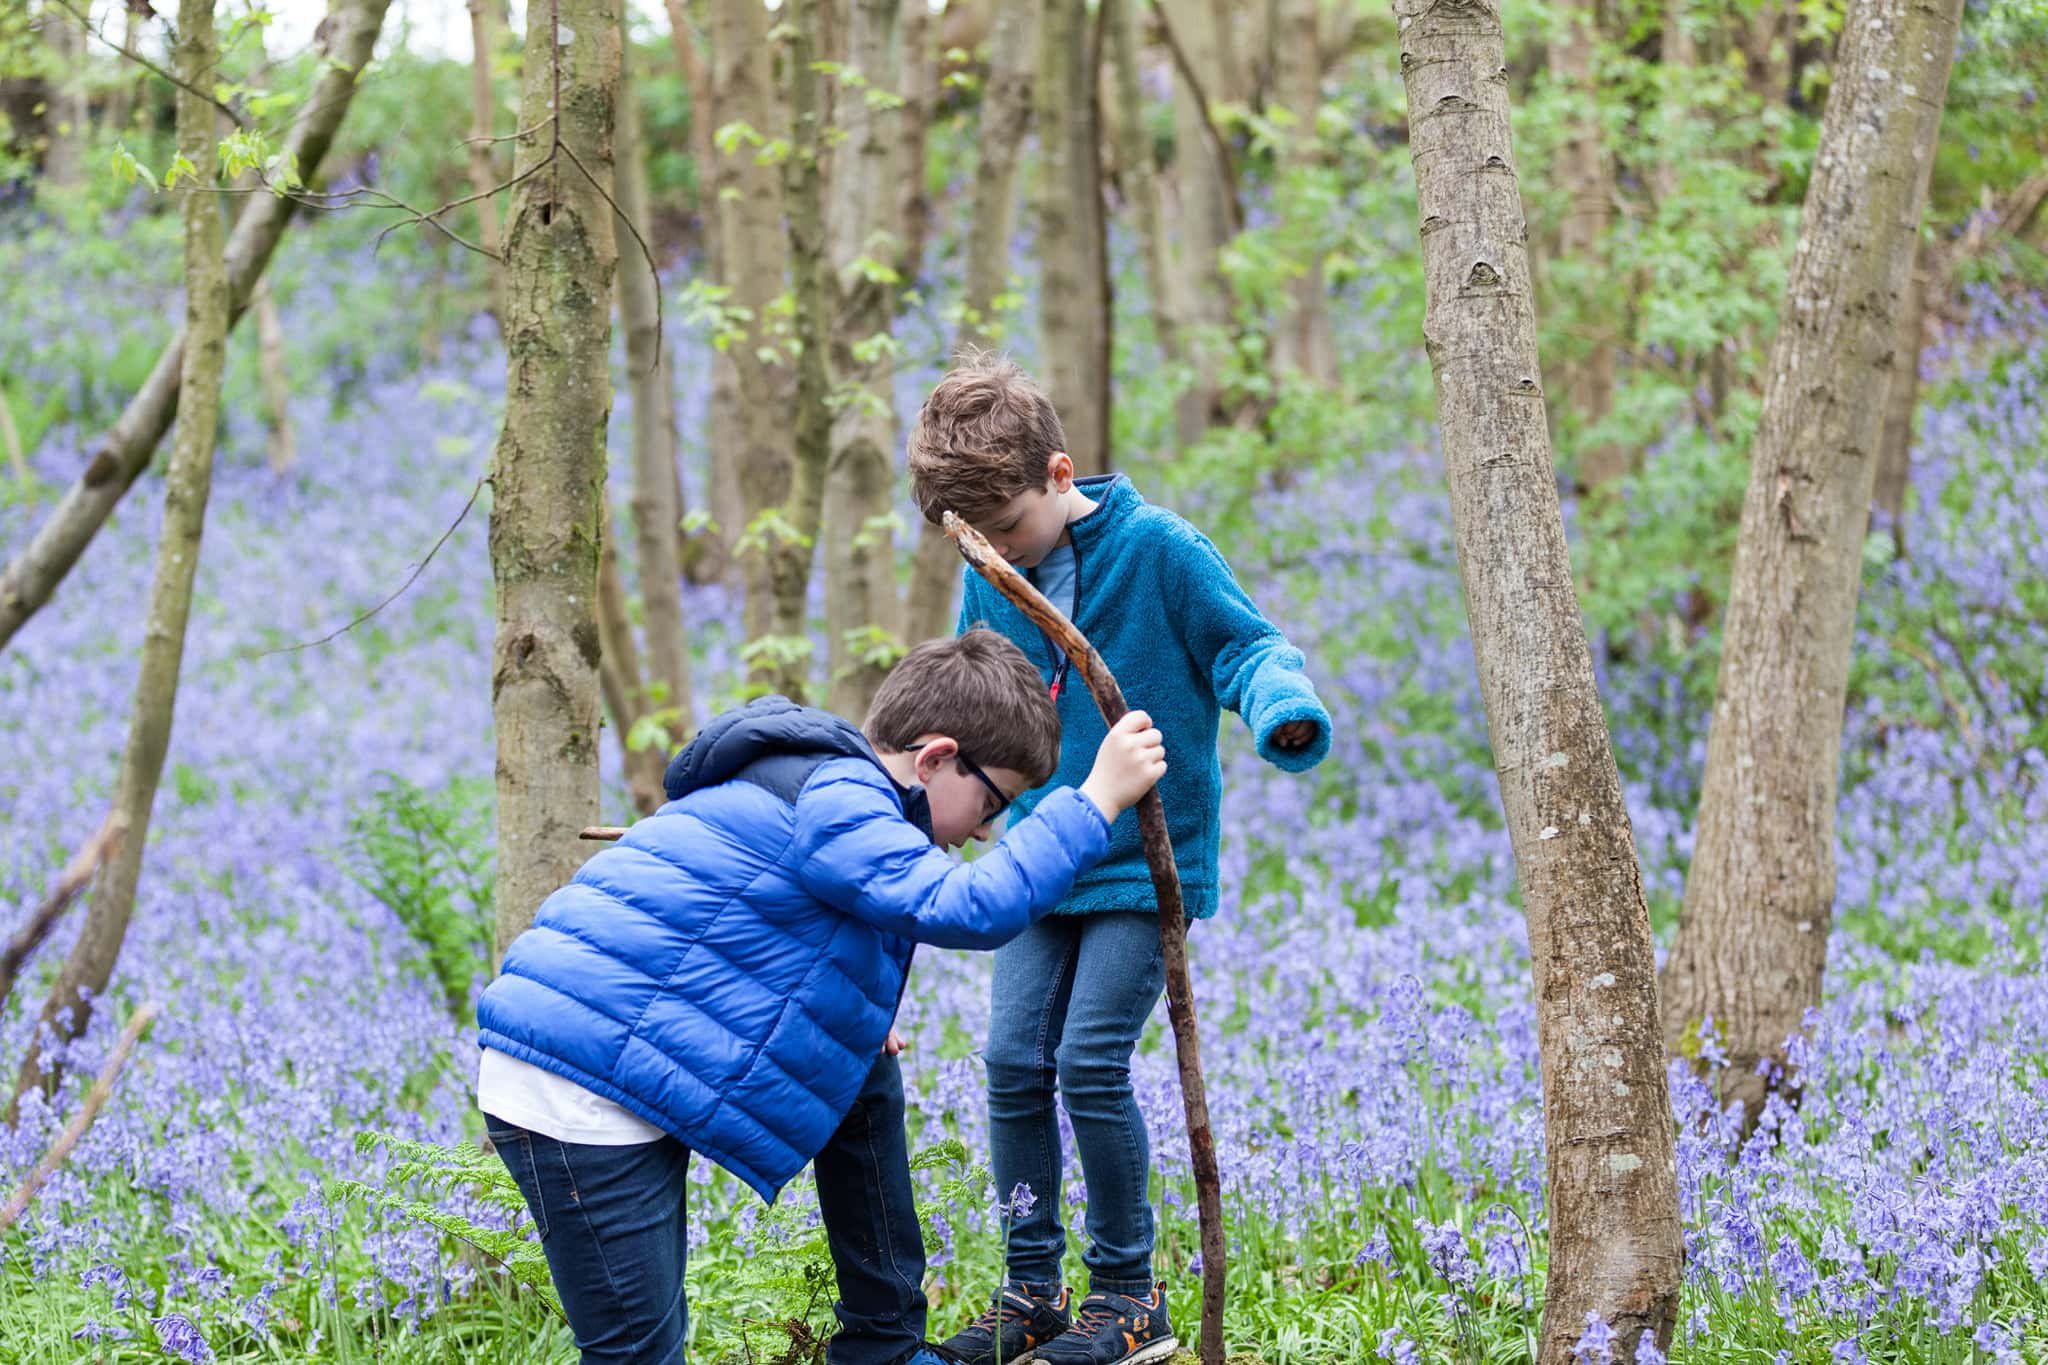 brothers with a stick playing in the bluebells at their Sevenoaks family bluebell shoot